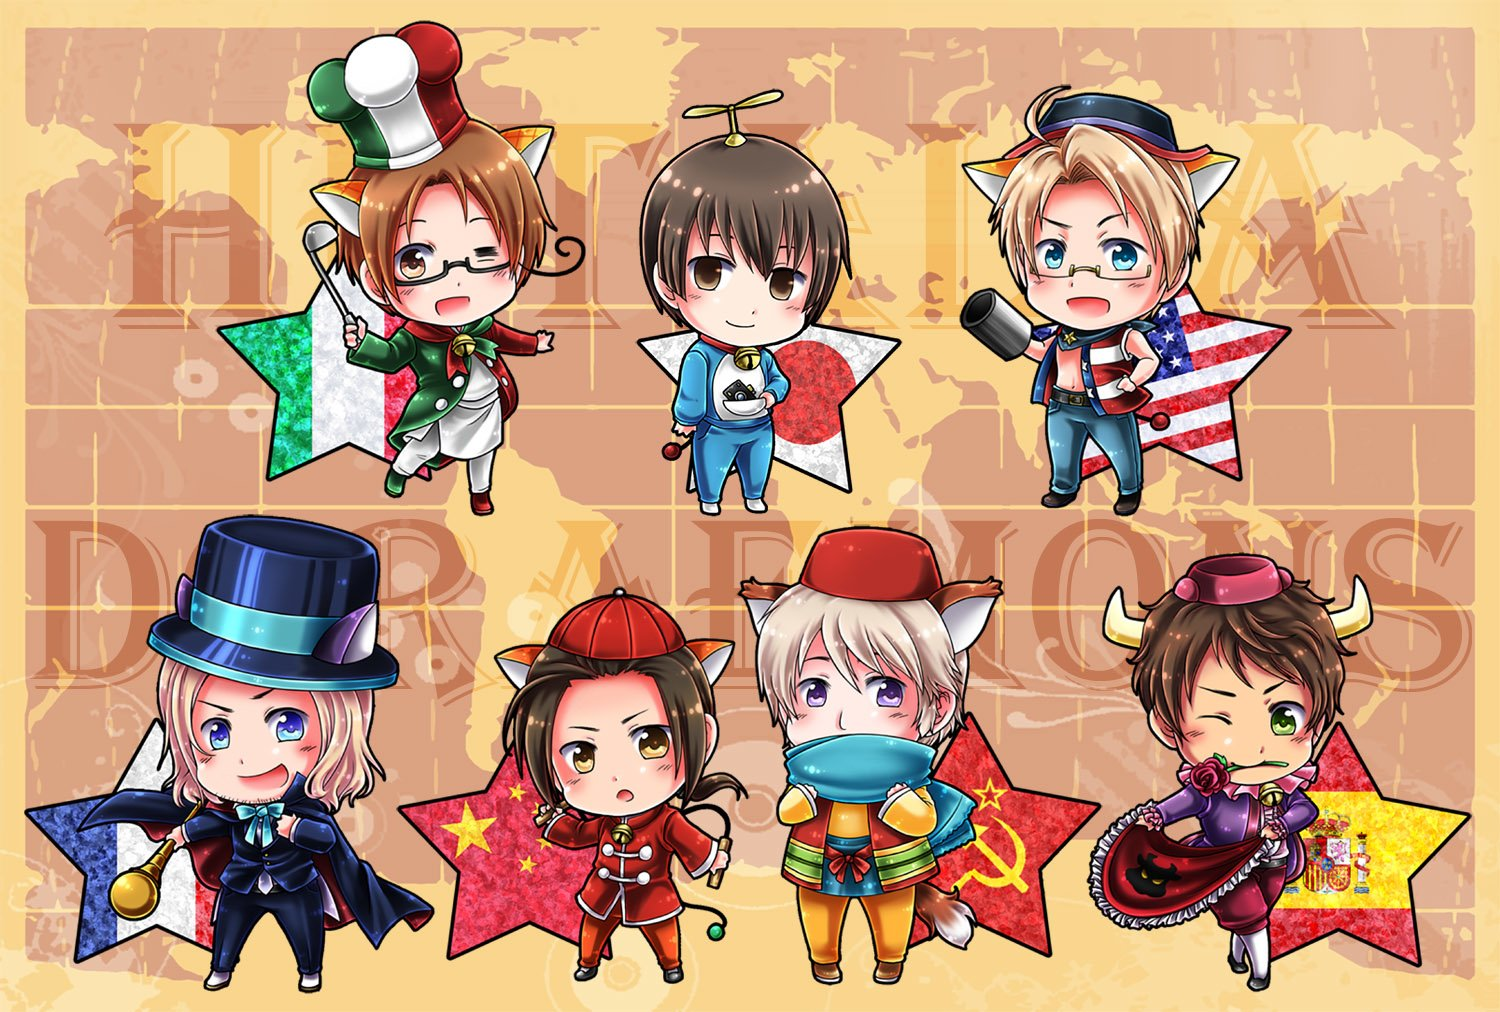 Hetalia backgrounds - SF Wallpaper